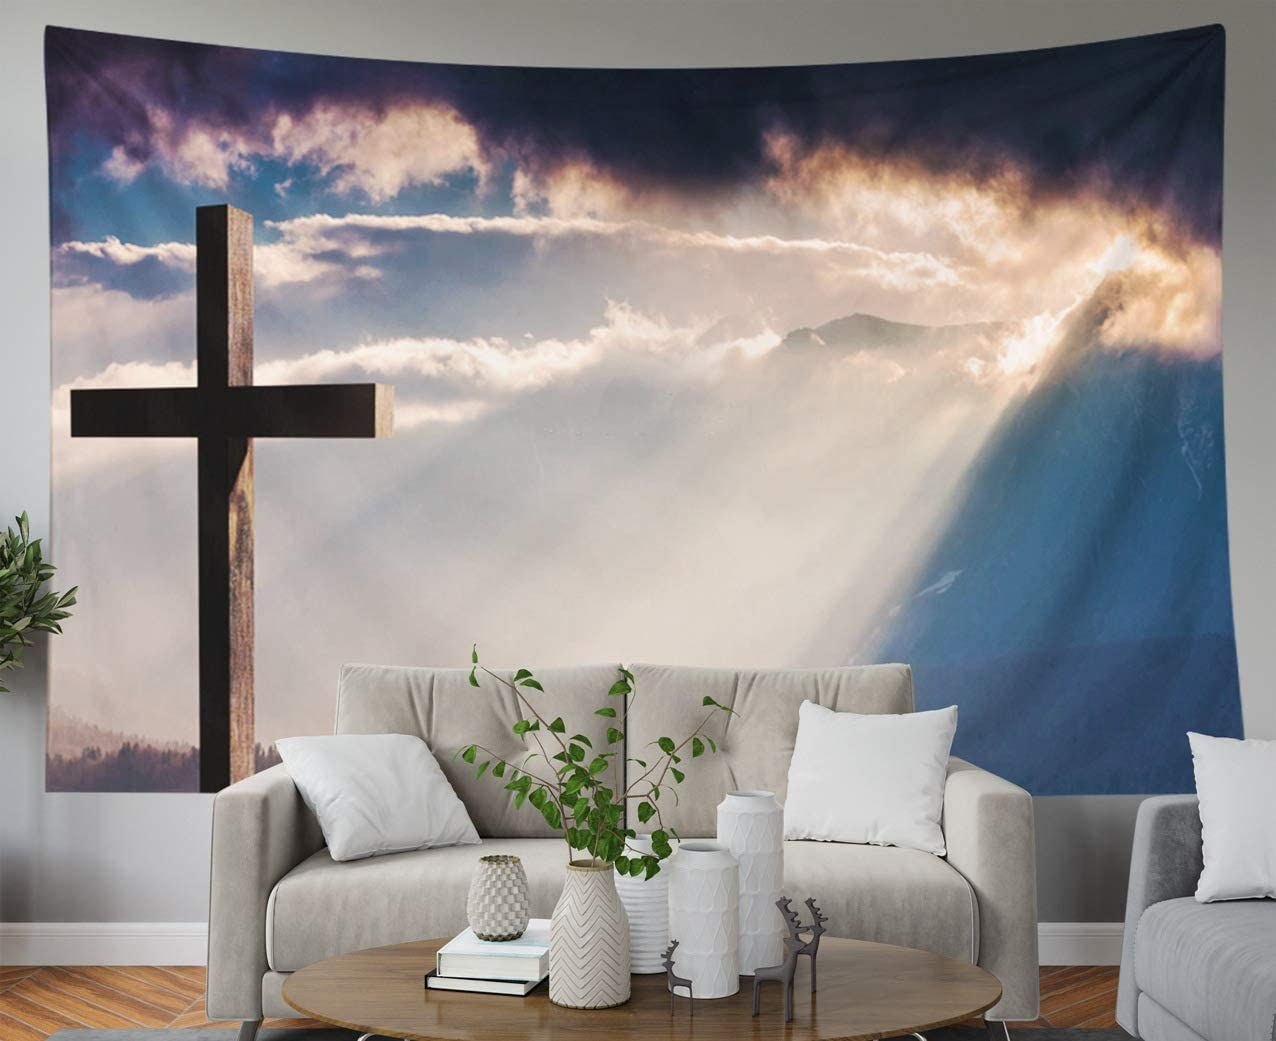 Shorping Father Gift Tapestry, 60x50Inches Home Wall Hanging Tapestries Art for Décor Living Room Dorm Christ Cross Easter Resurrection Concept Christian Wooden on a Background with Dramatic Lighting